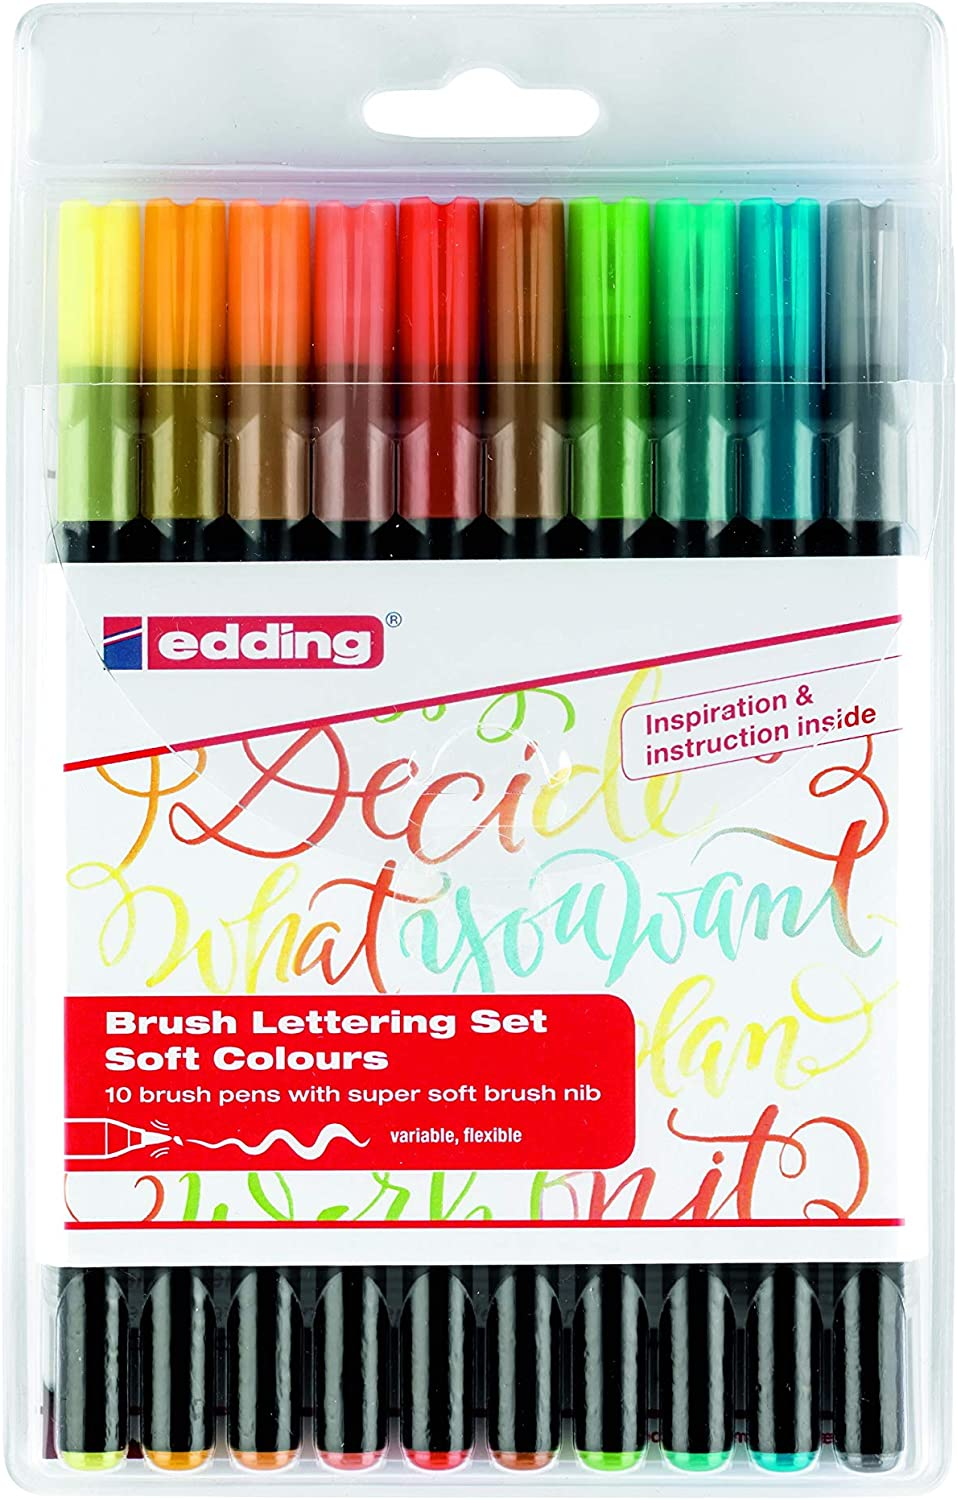 edding 1255 Calligraphy Pen Pack of 3 Brown